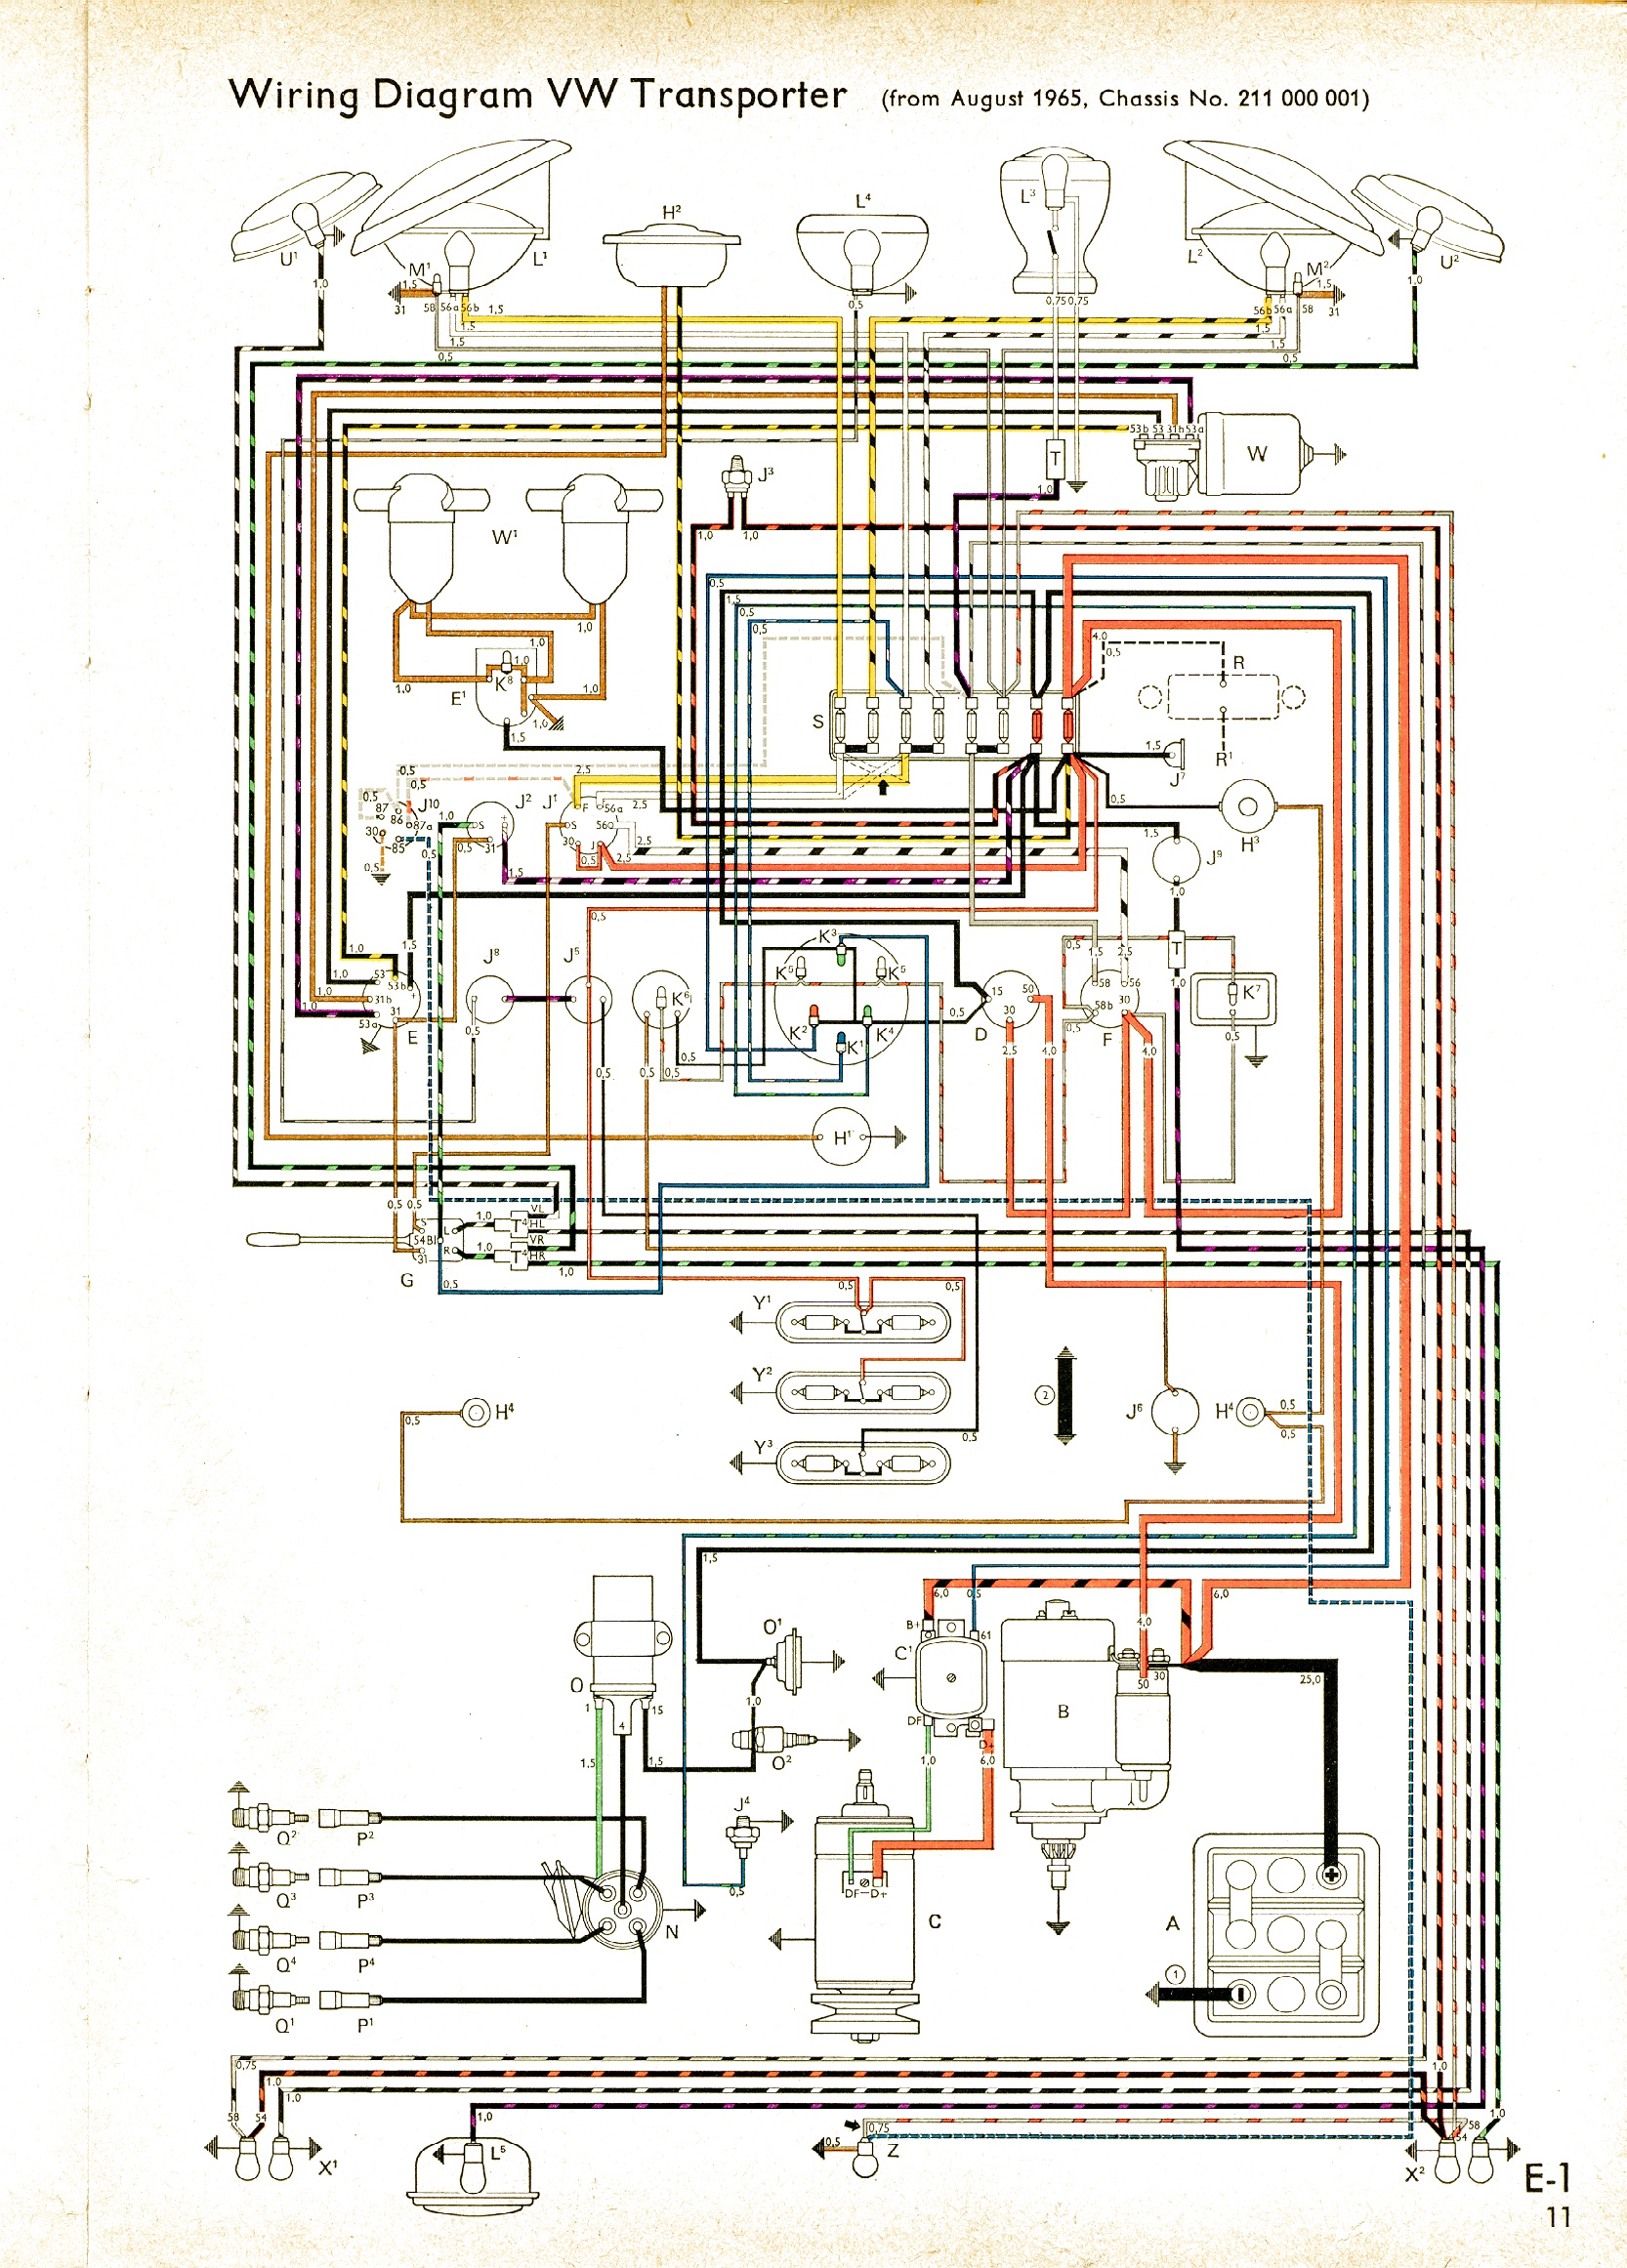 bus 65 vintagebus com vw bus (and other) wiring diagrams vw beetle 2002 radio wiring diagram at gsmportal.co